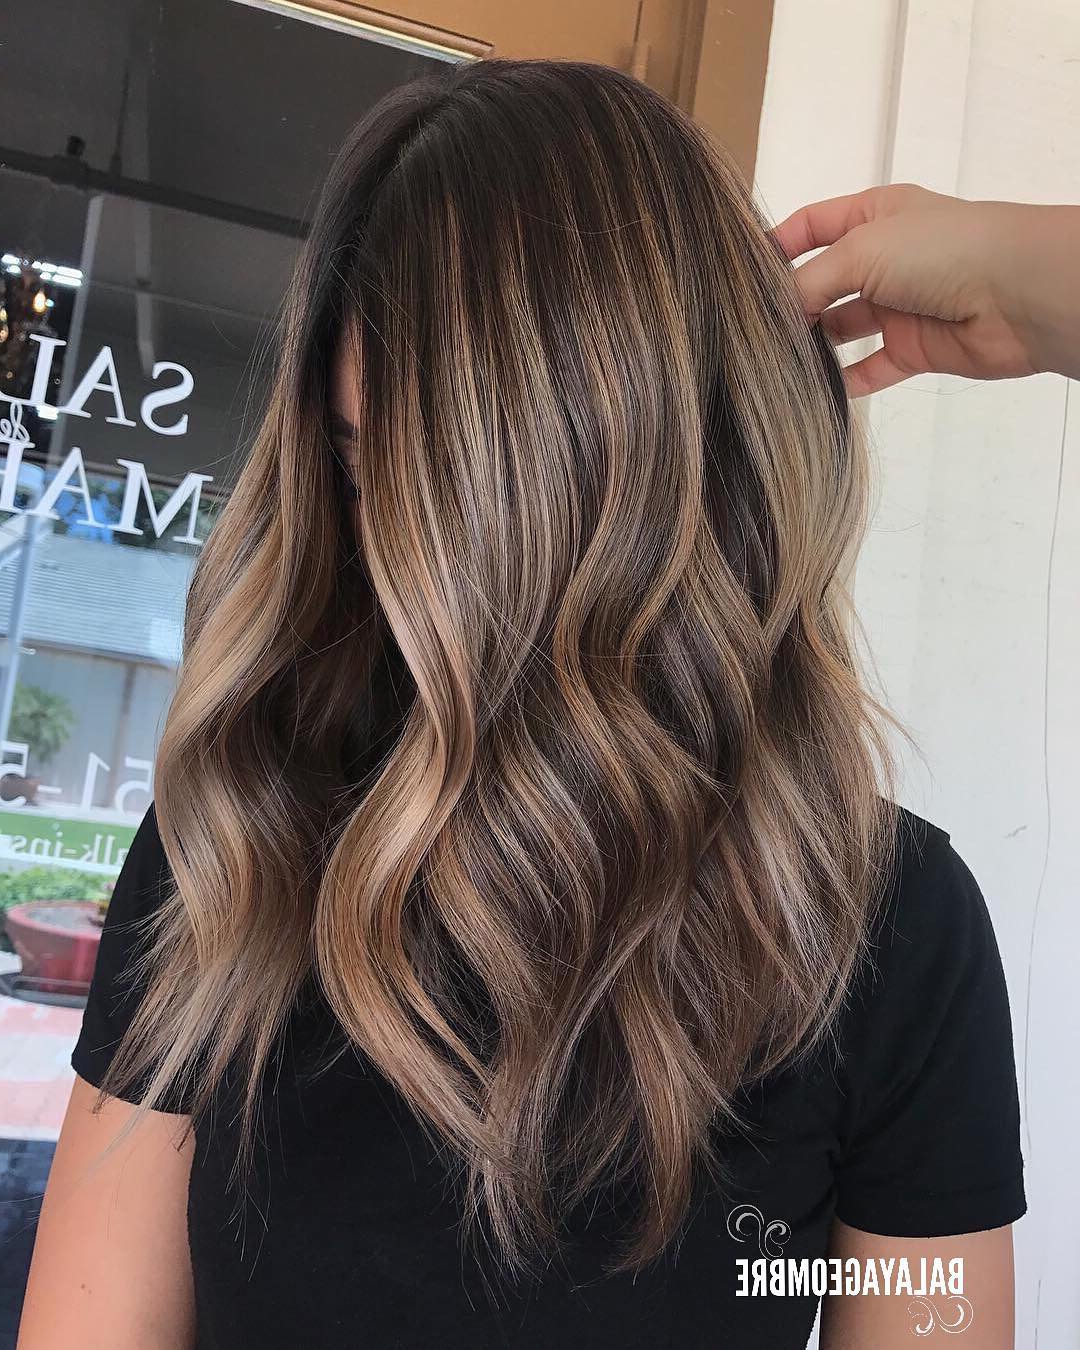 Preferred Medium Medium Haircuts For Thick Hair For Layered Medium Haircuts For Thick Hair 10 Best Medium Layered (View 6 of 20)